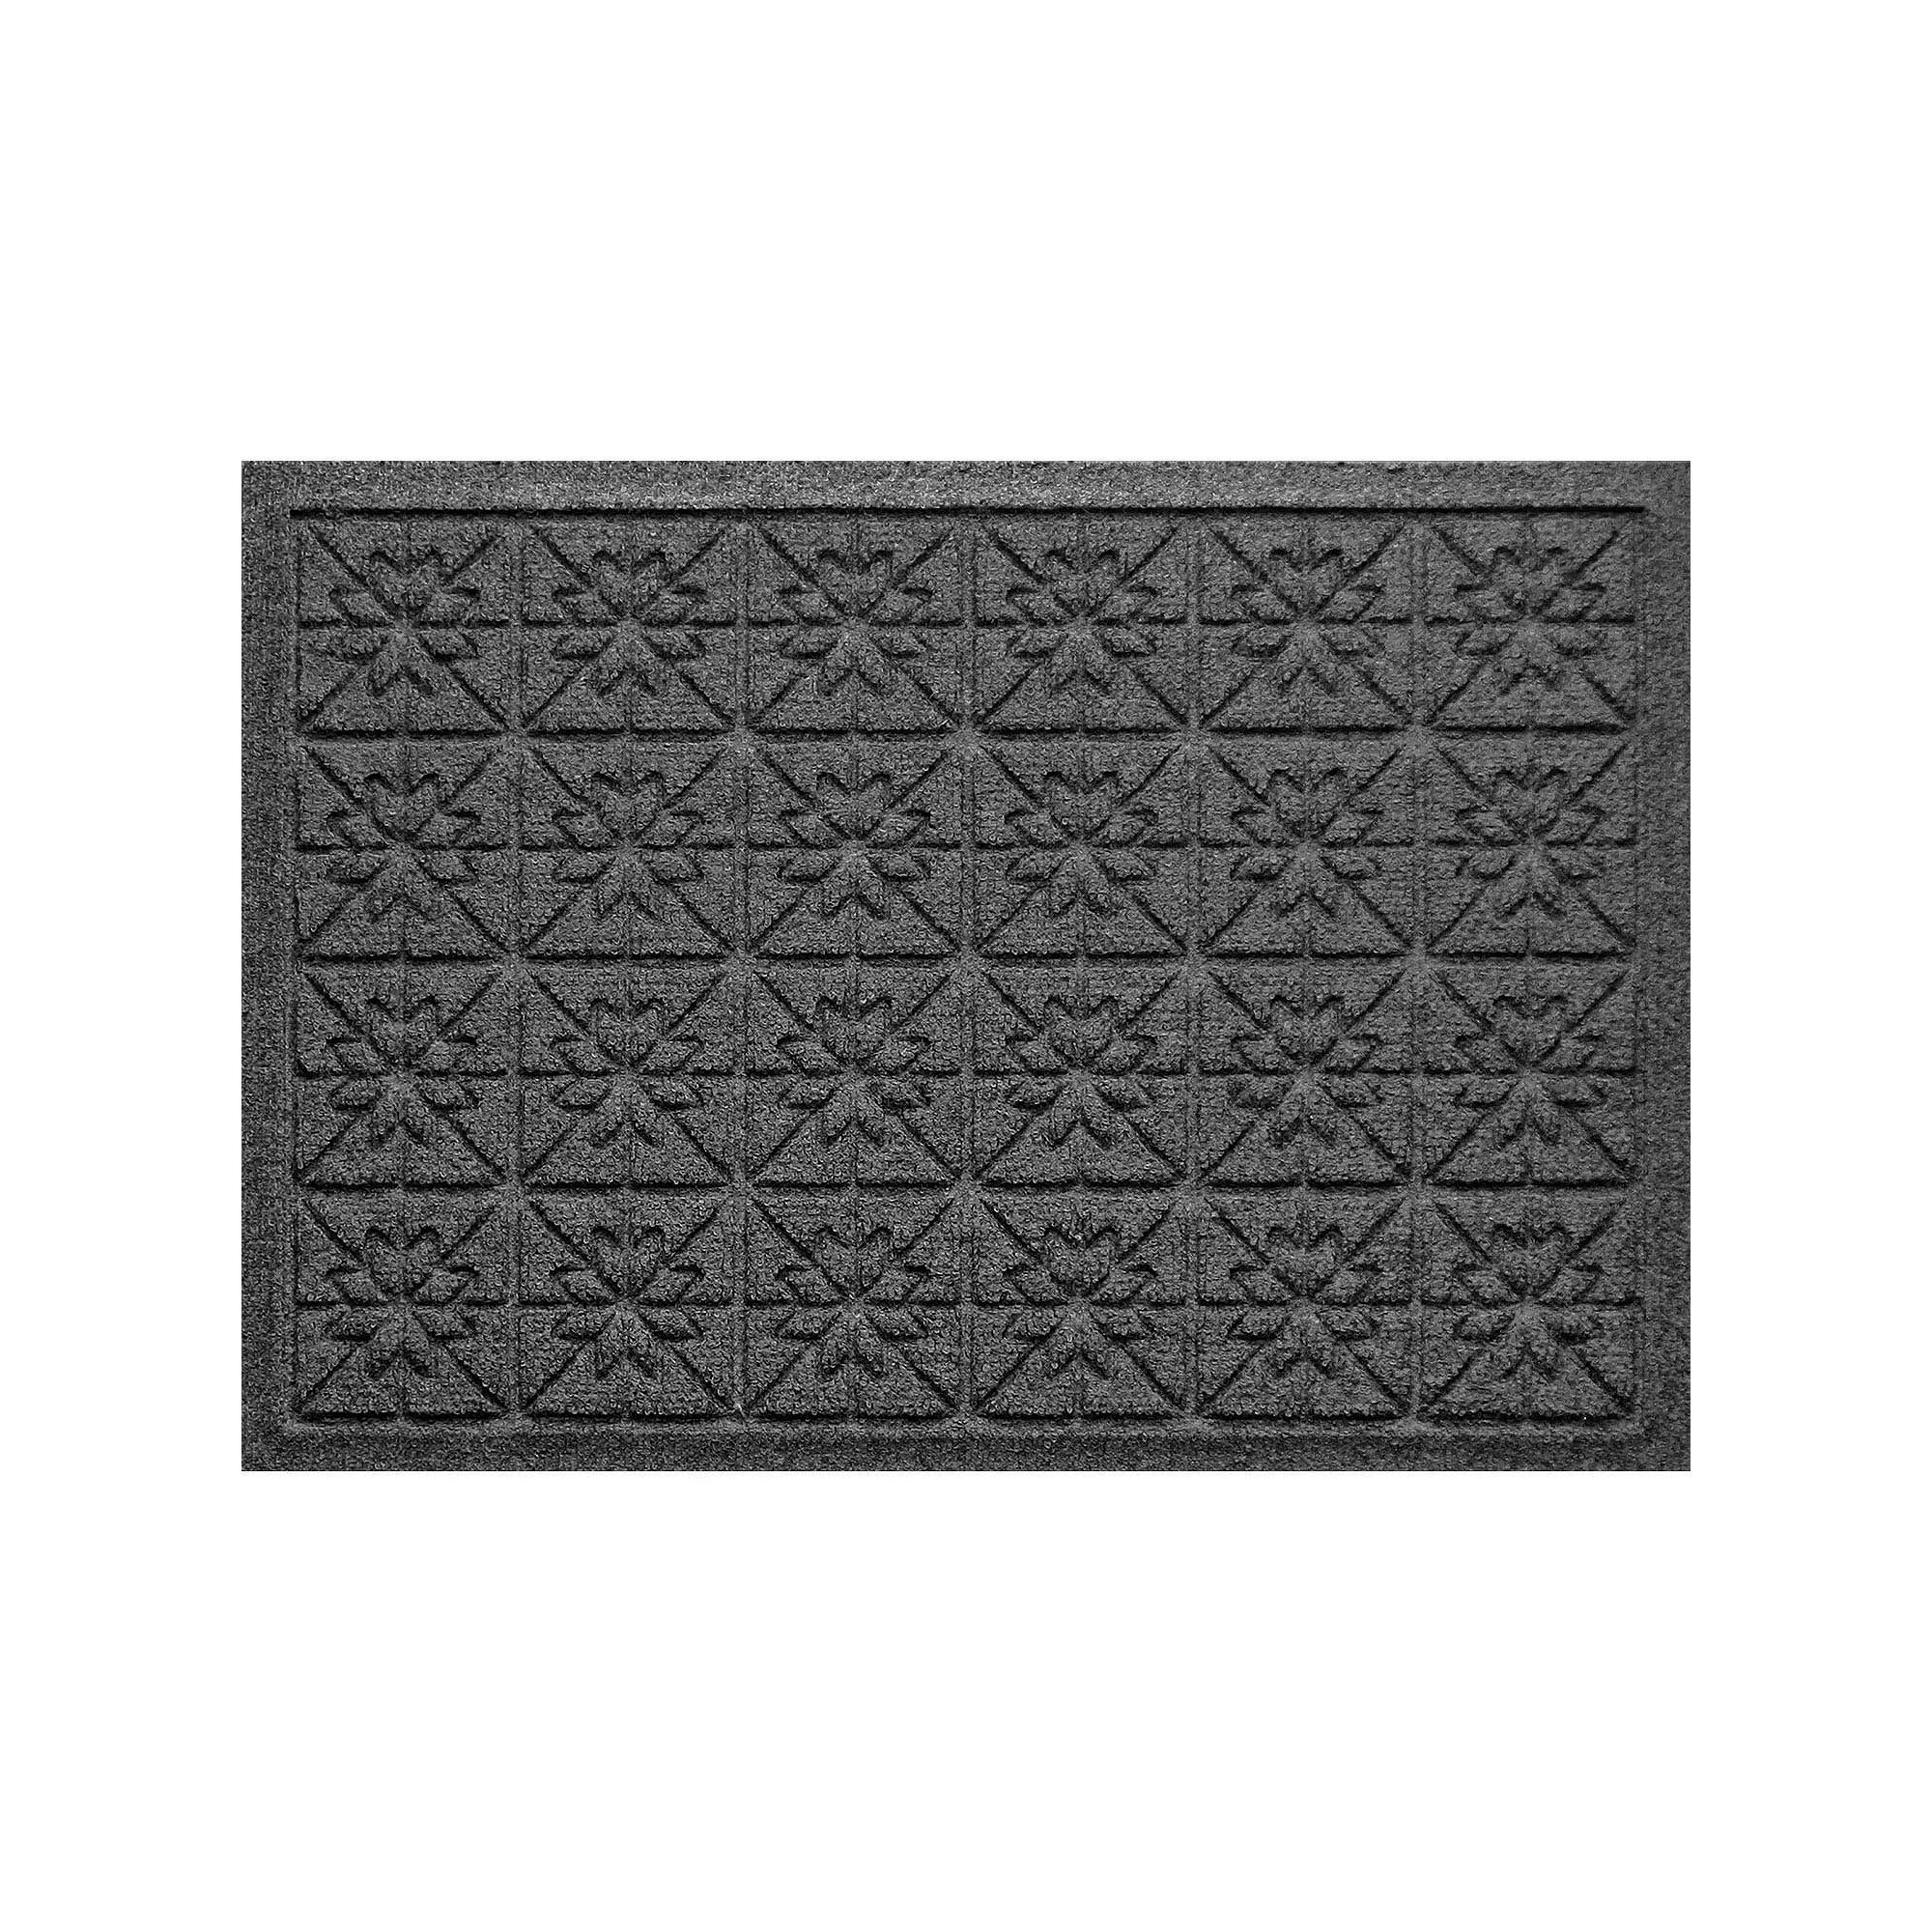 usa mat cupboard door old gifts waterguard mats charcoal the shop diamonds sale guard water home